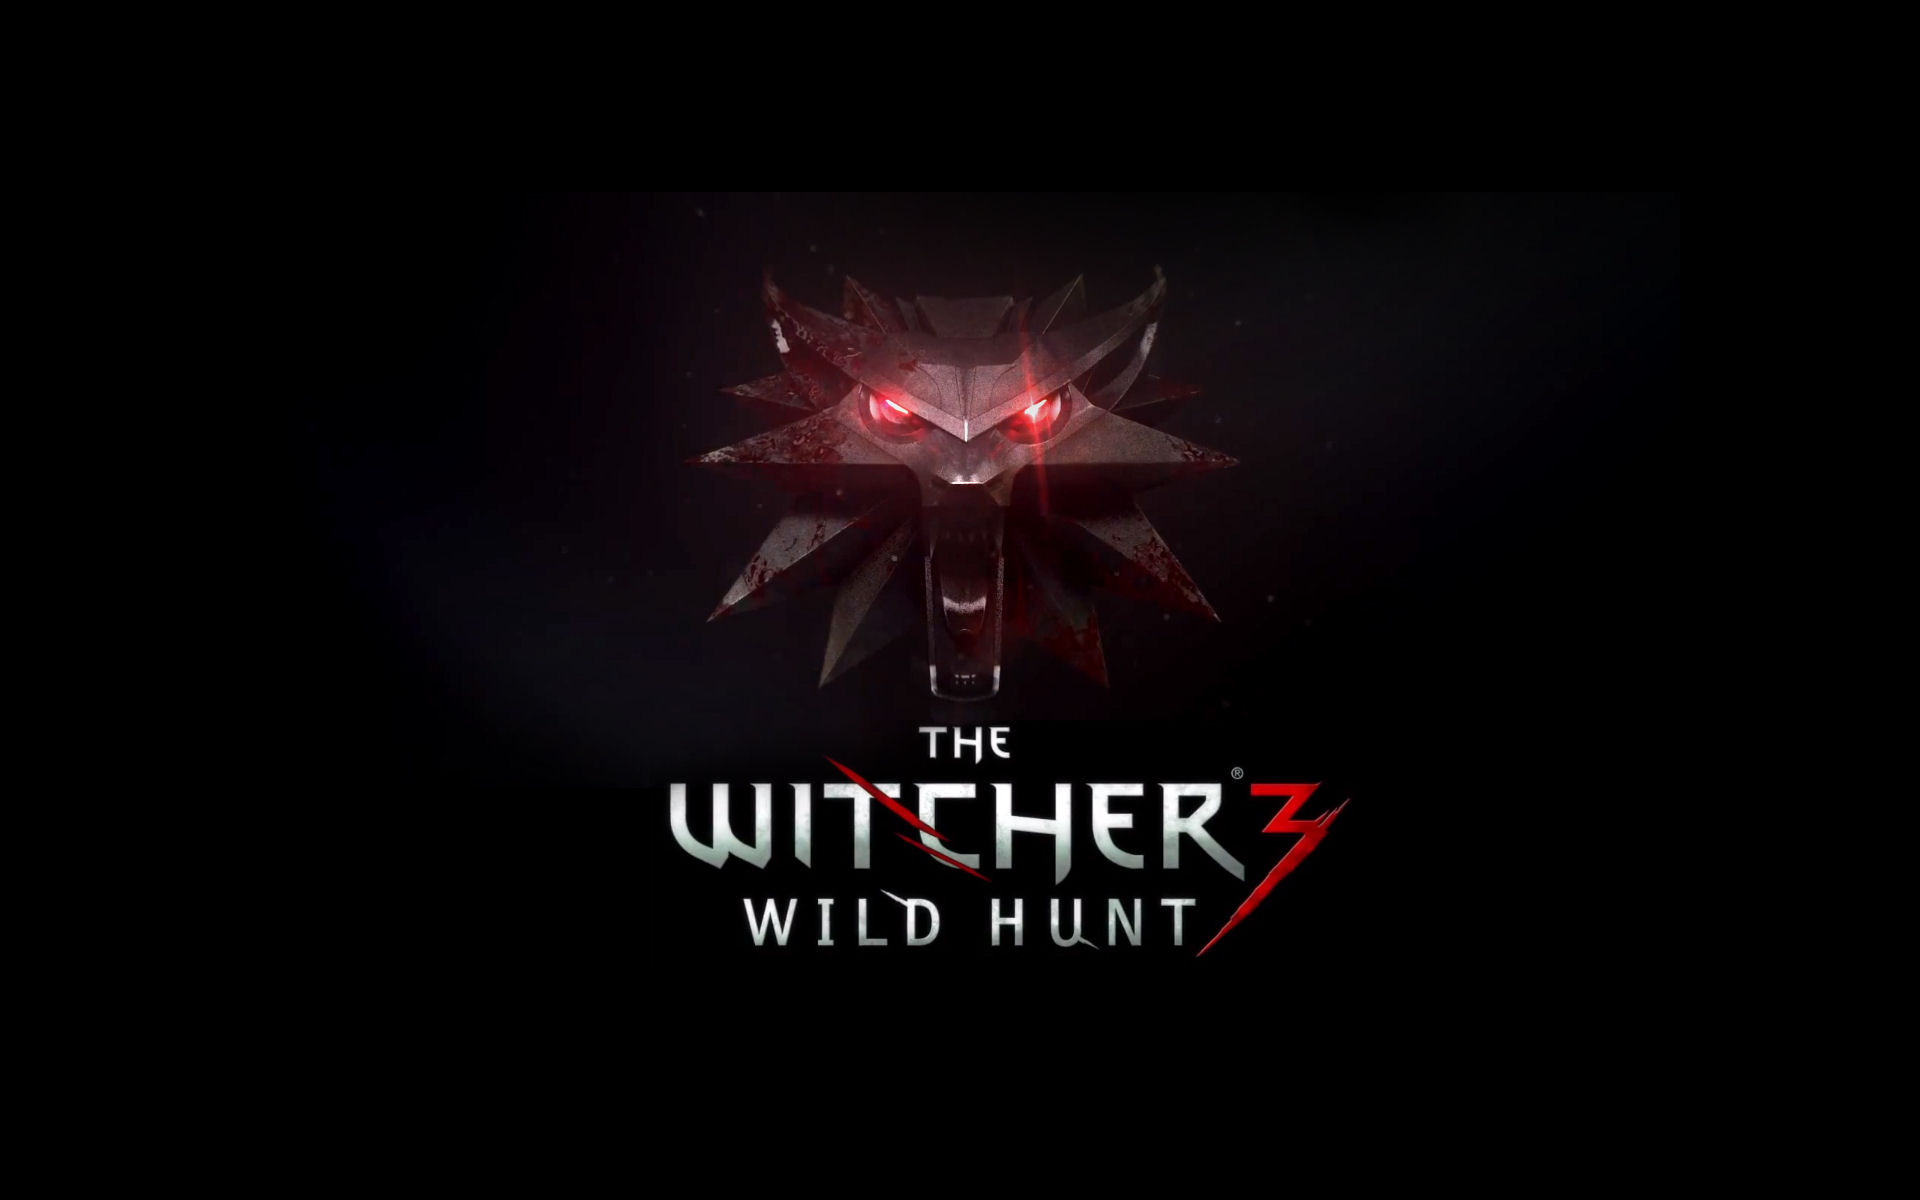 The Witcher 3 Wolf Wallpaper